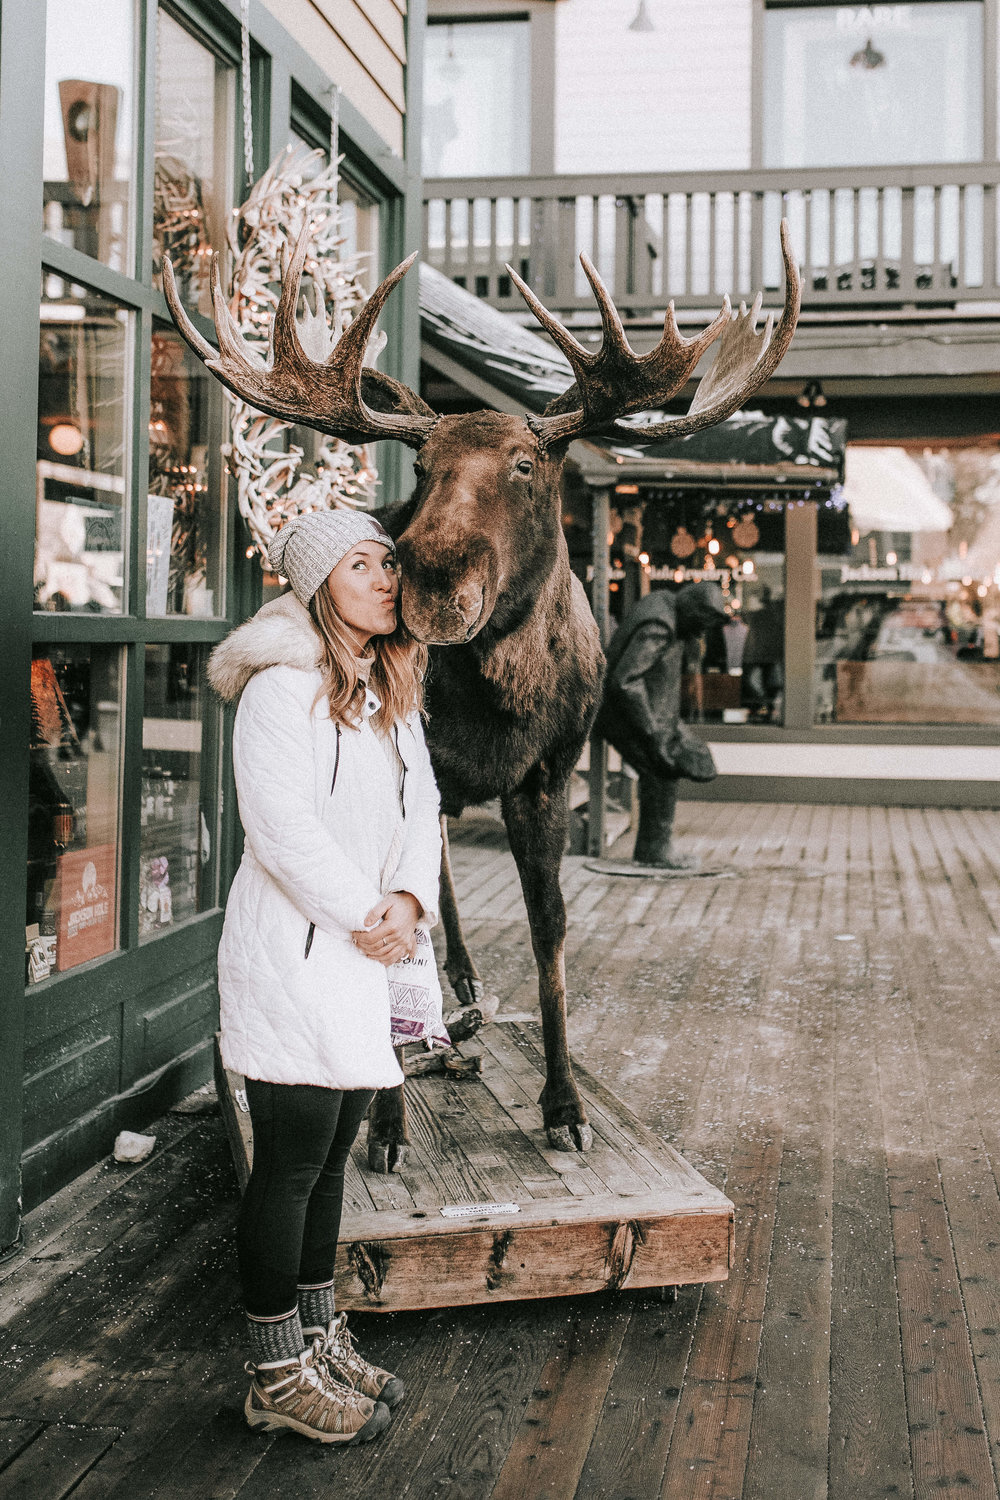 nicole-daacke-photography-jackson-hole-grand-teton-national-park-elopement-wedding-photographer-adventurous-engagement-session-grand-tetons-snow-visit-itinerary-for-jackson-hole-wyoming-9429.jpg